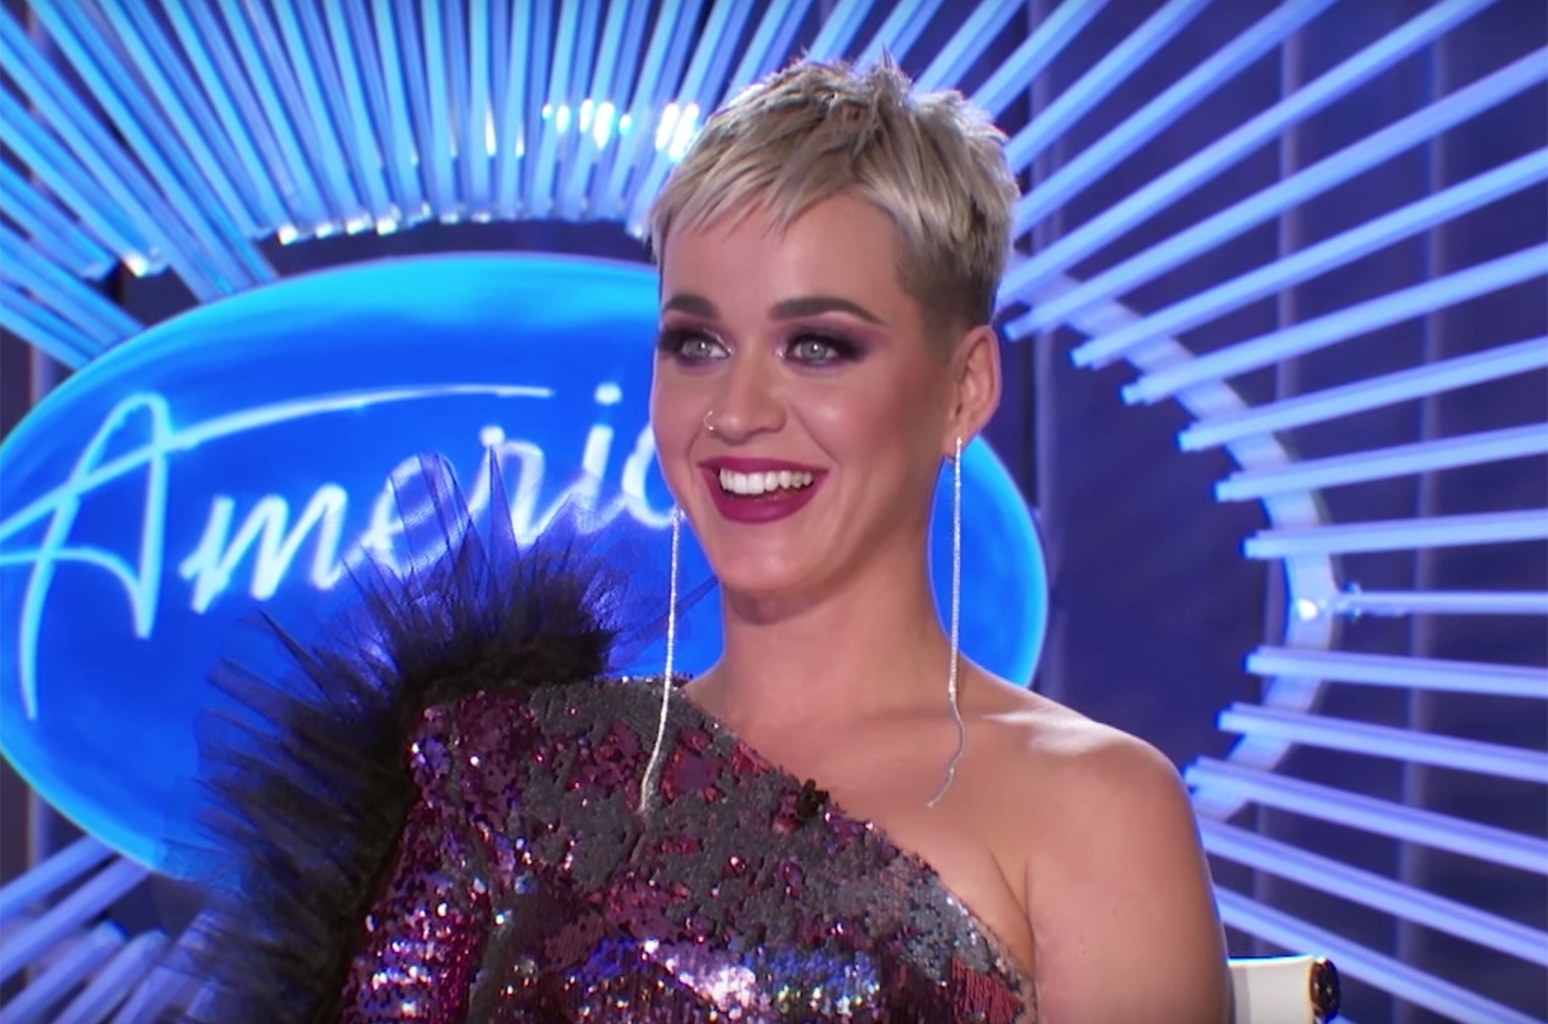 What does wig mean? Learn about Katy Perry's favourite slang term